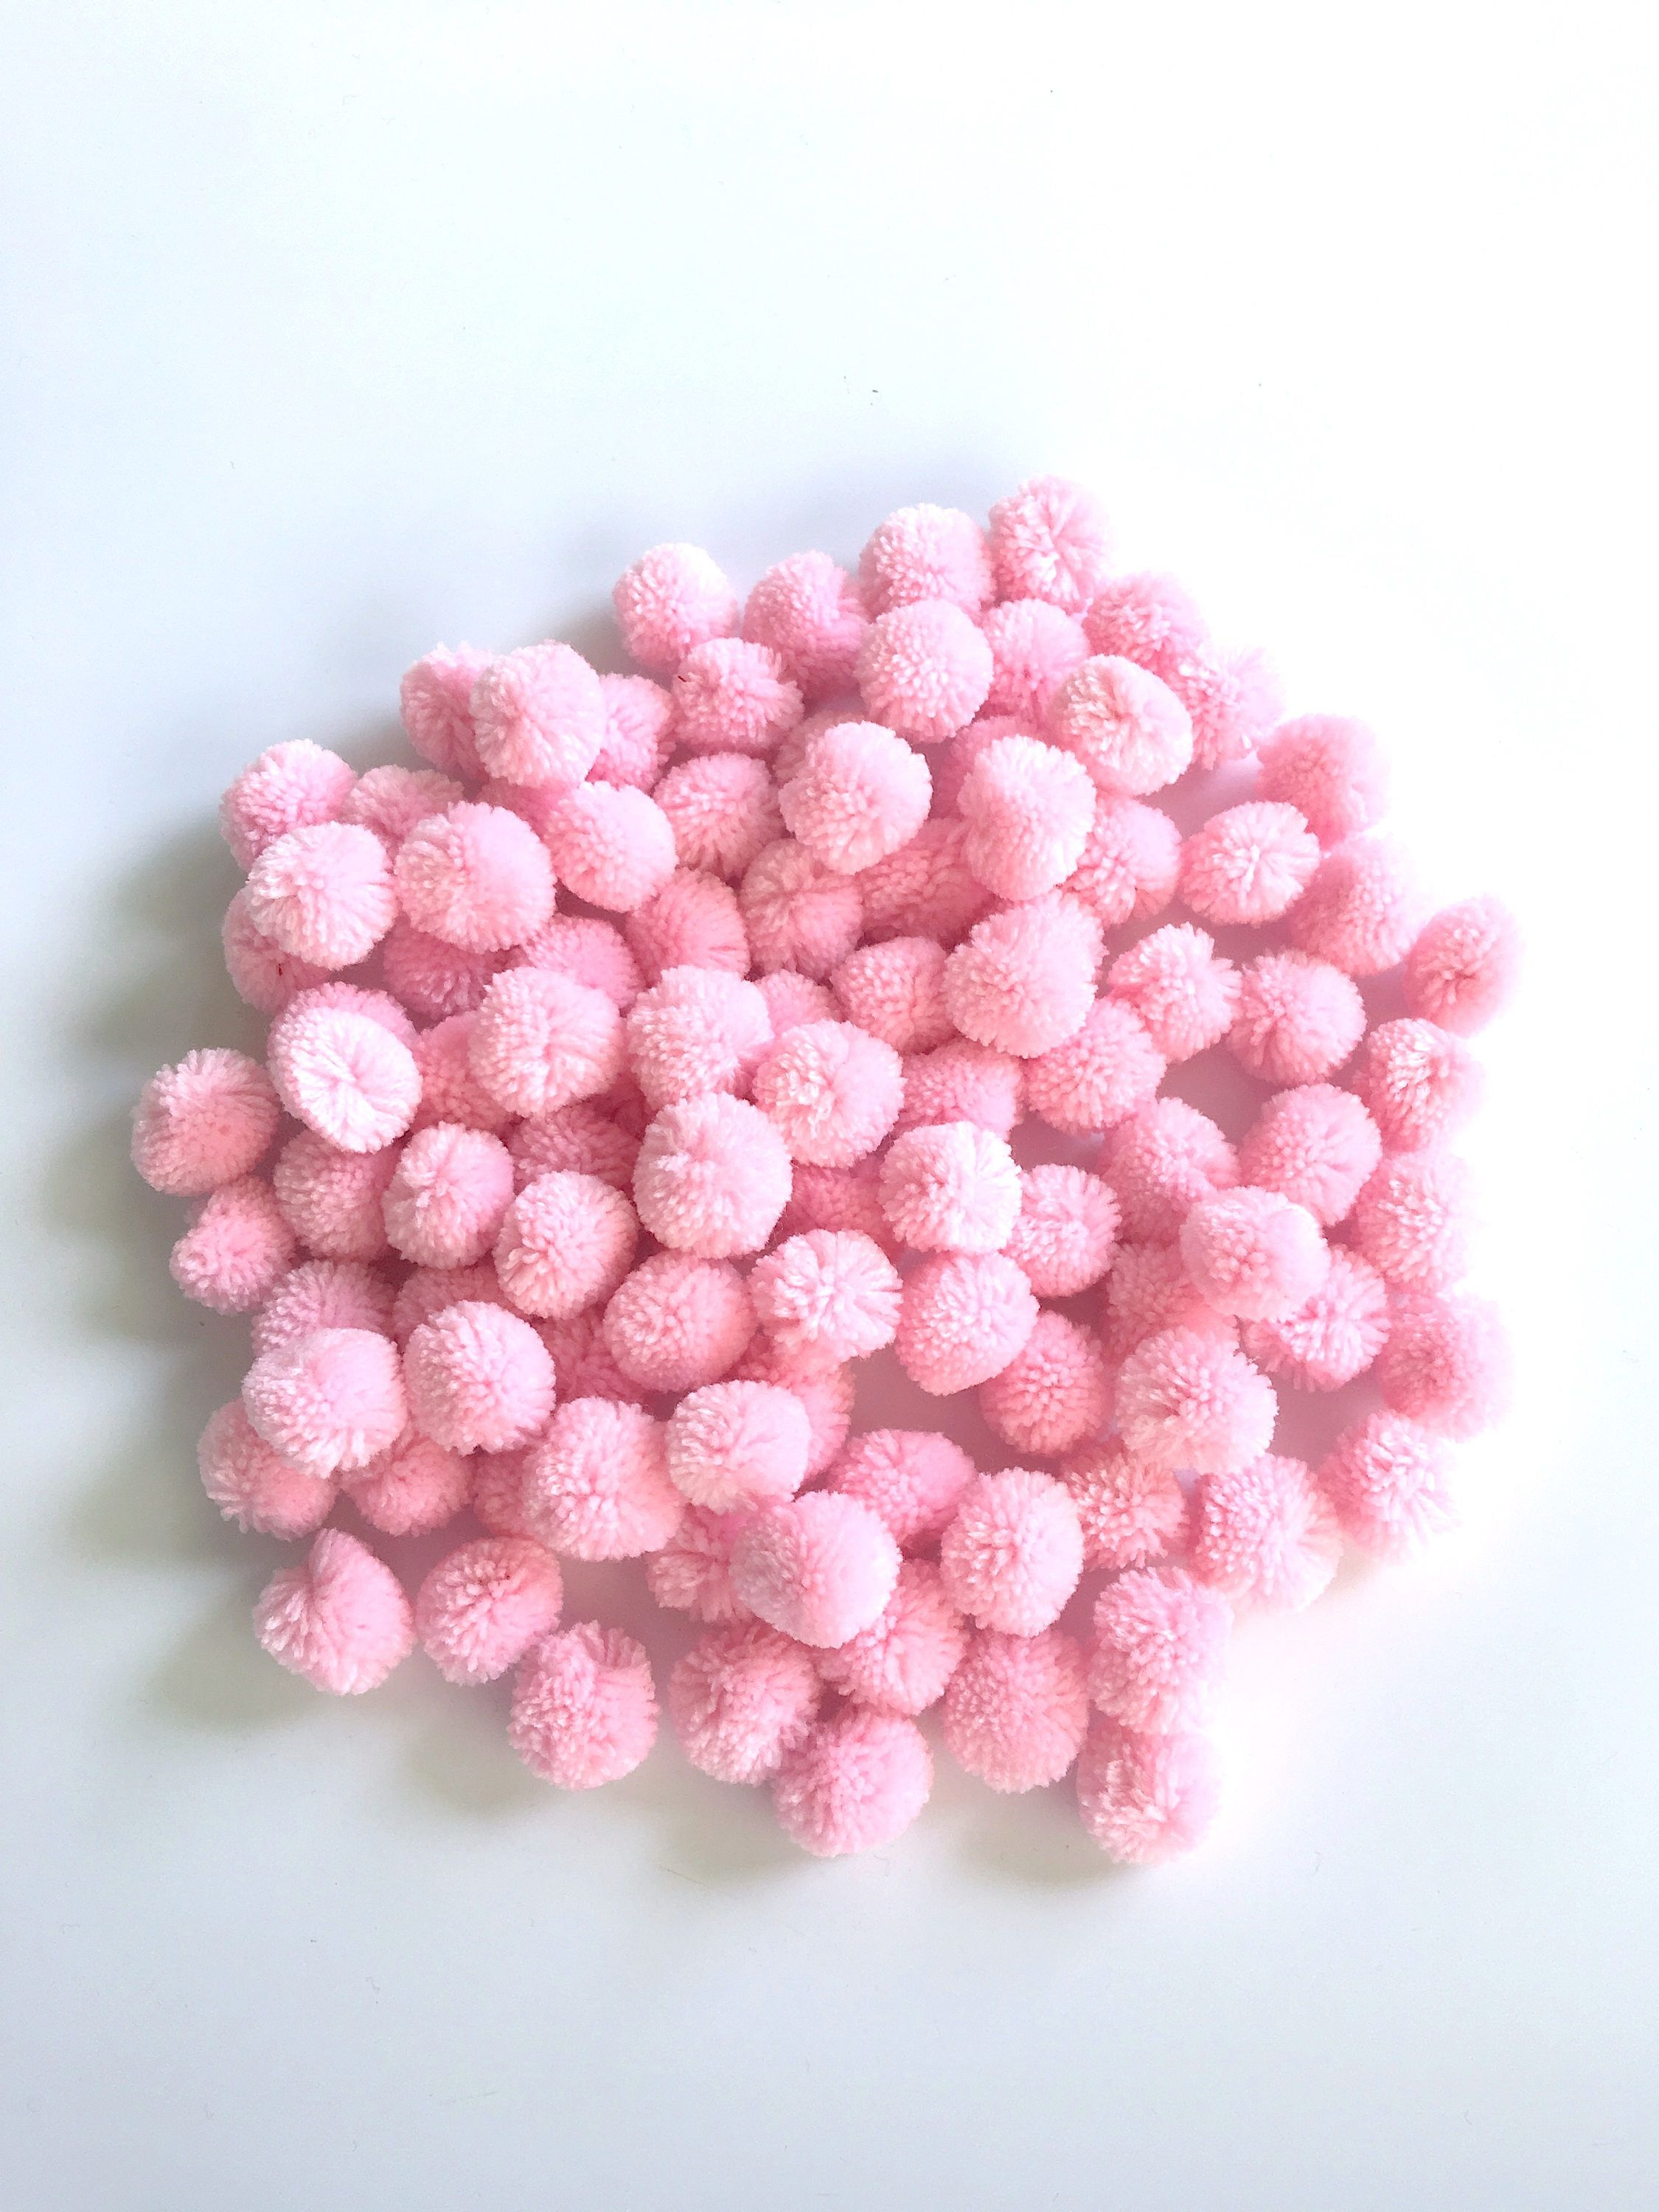 Blush Pink Yarn Pom Poms 1 Inch Decorative Ball Jewelry Making Pompom Garland Nursery Decor Pompon Ball Party Decor Boho Decor Valentine Valentine D